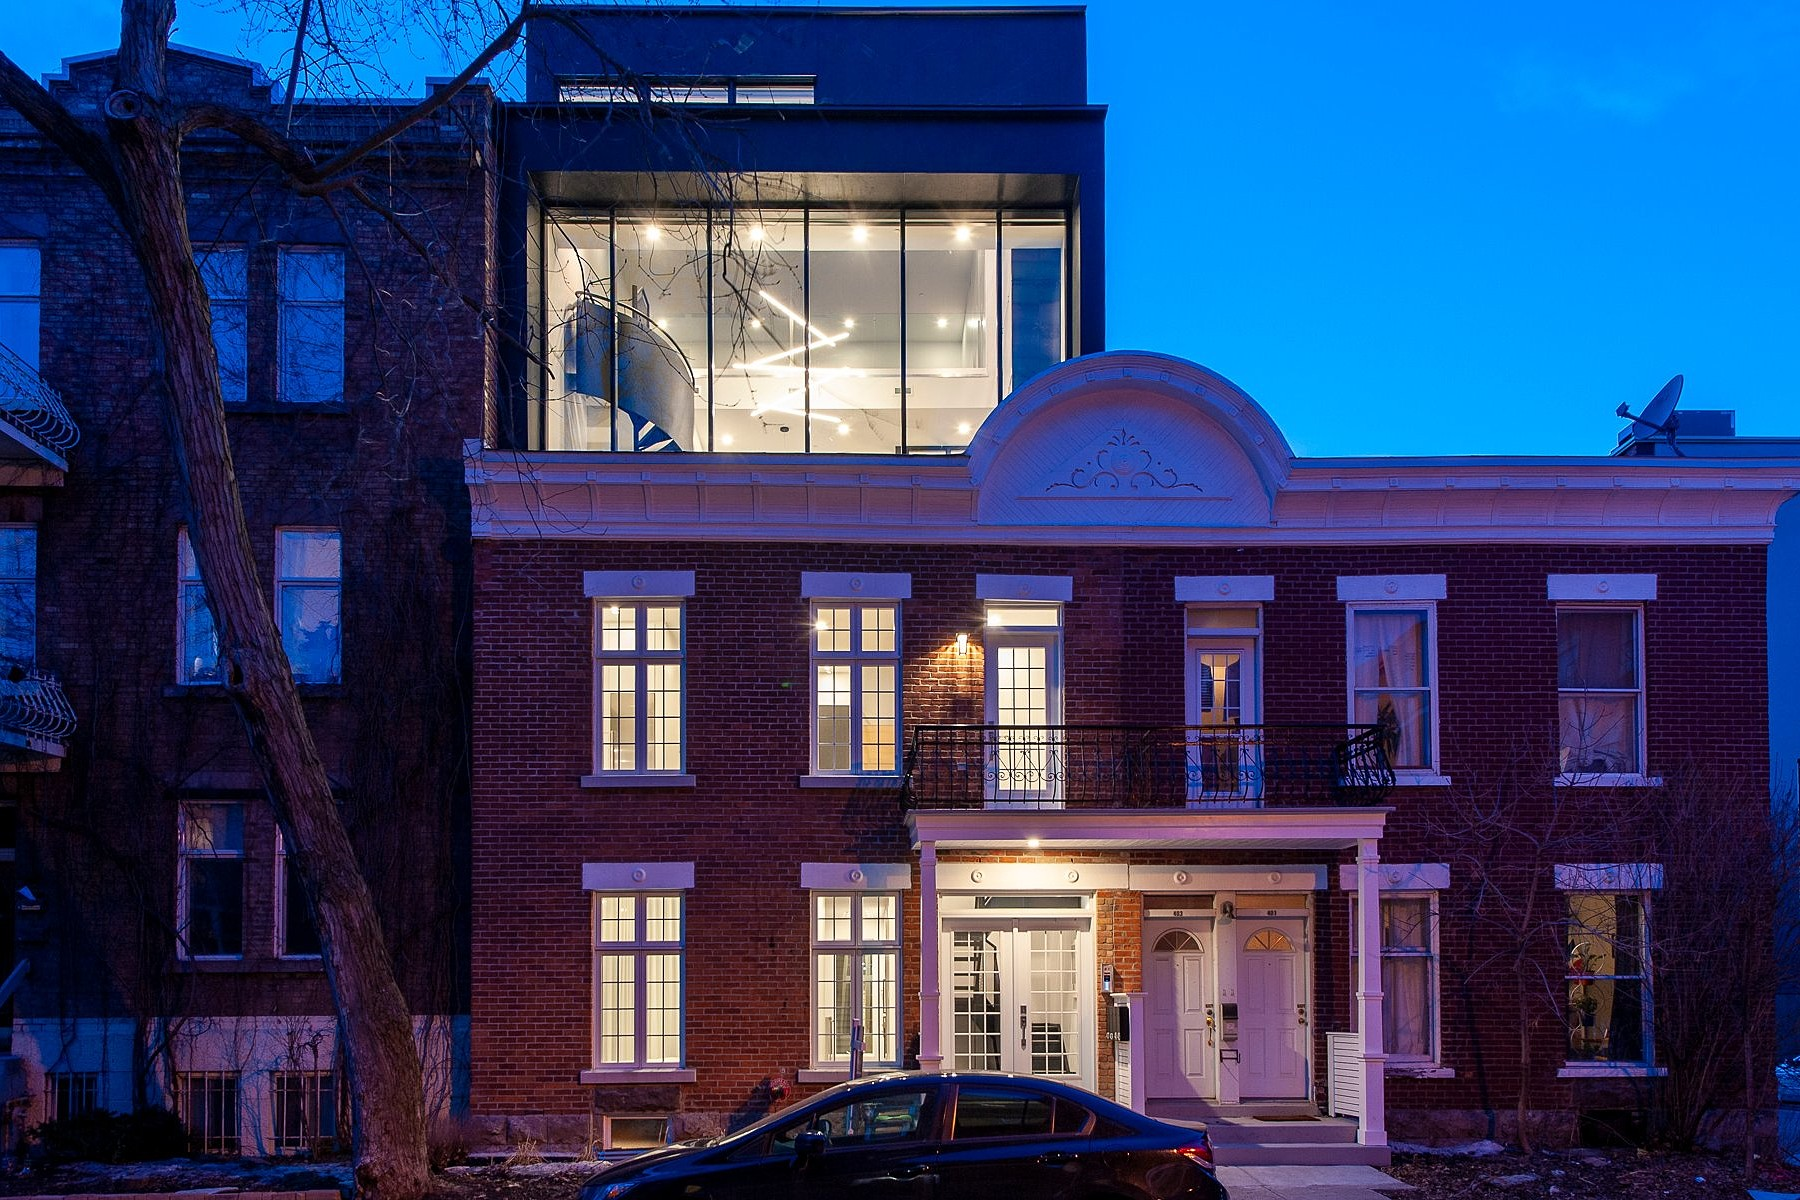 Single Family Homes for Sale at Outremont, Montréal 409 Av. Édouard-Charles Outremont, Quebec H2V2N3 Canada